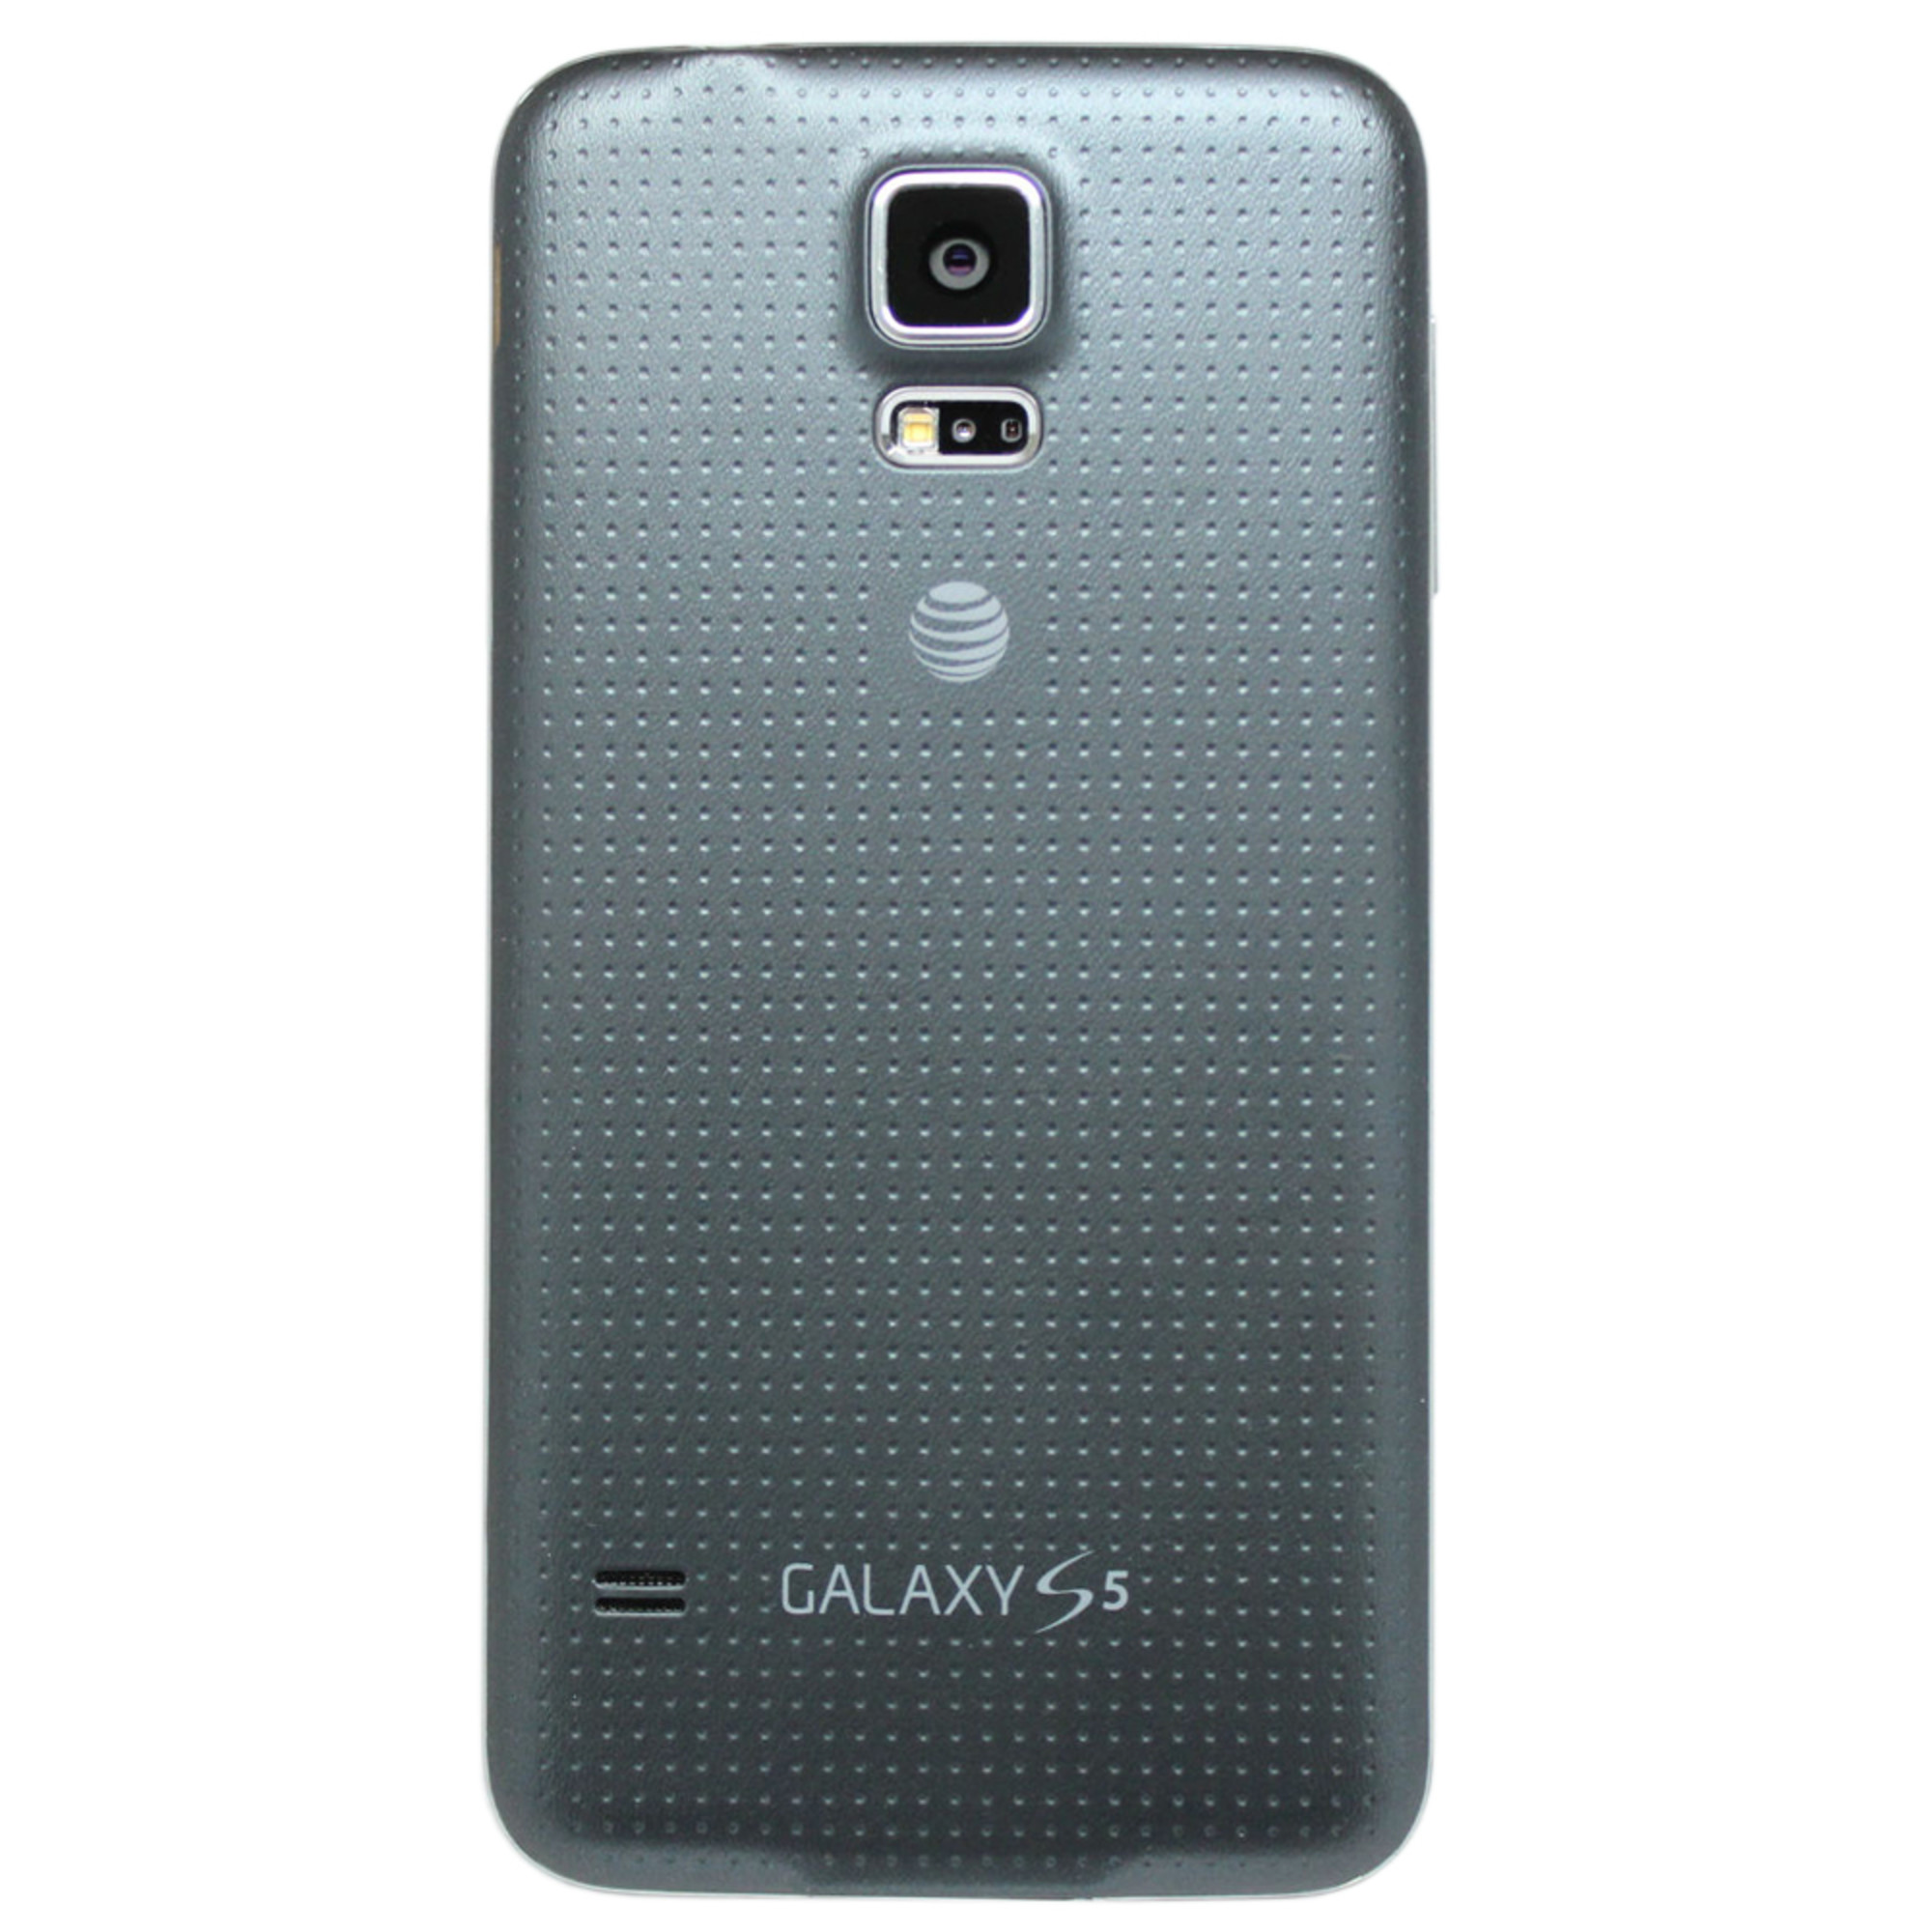 Samsung Galaxy S5 G900A 16GB AT&T Unlocked GSM Quad-Core ...